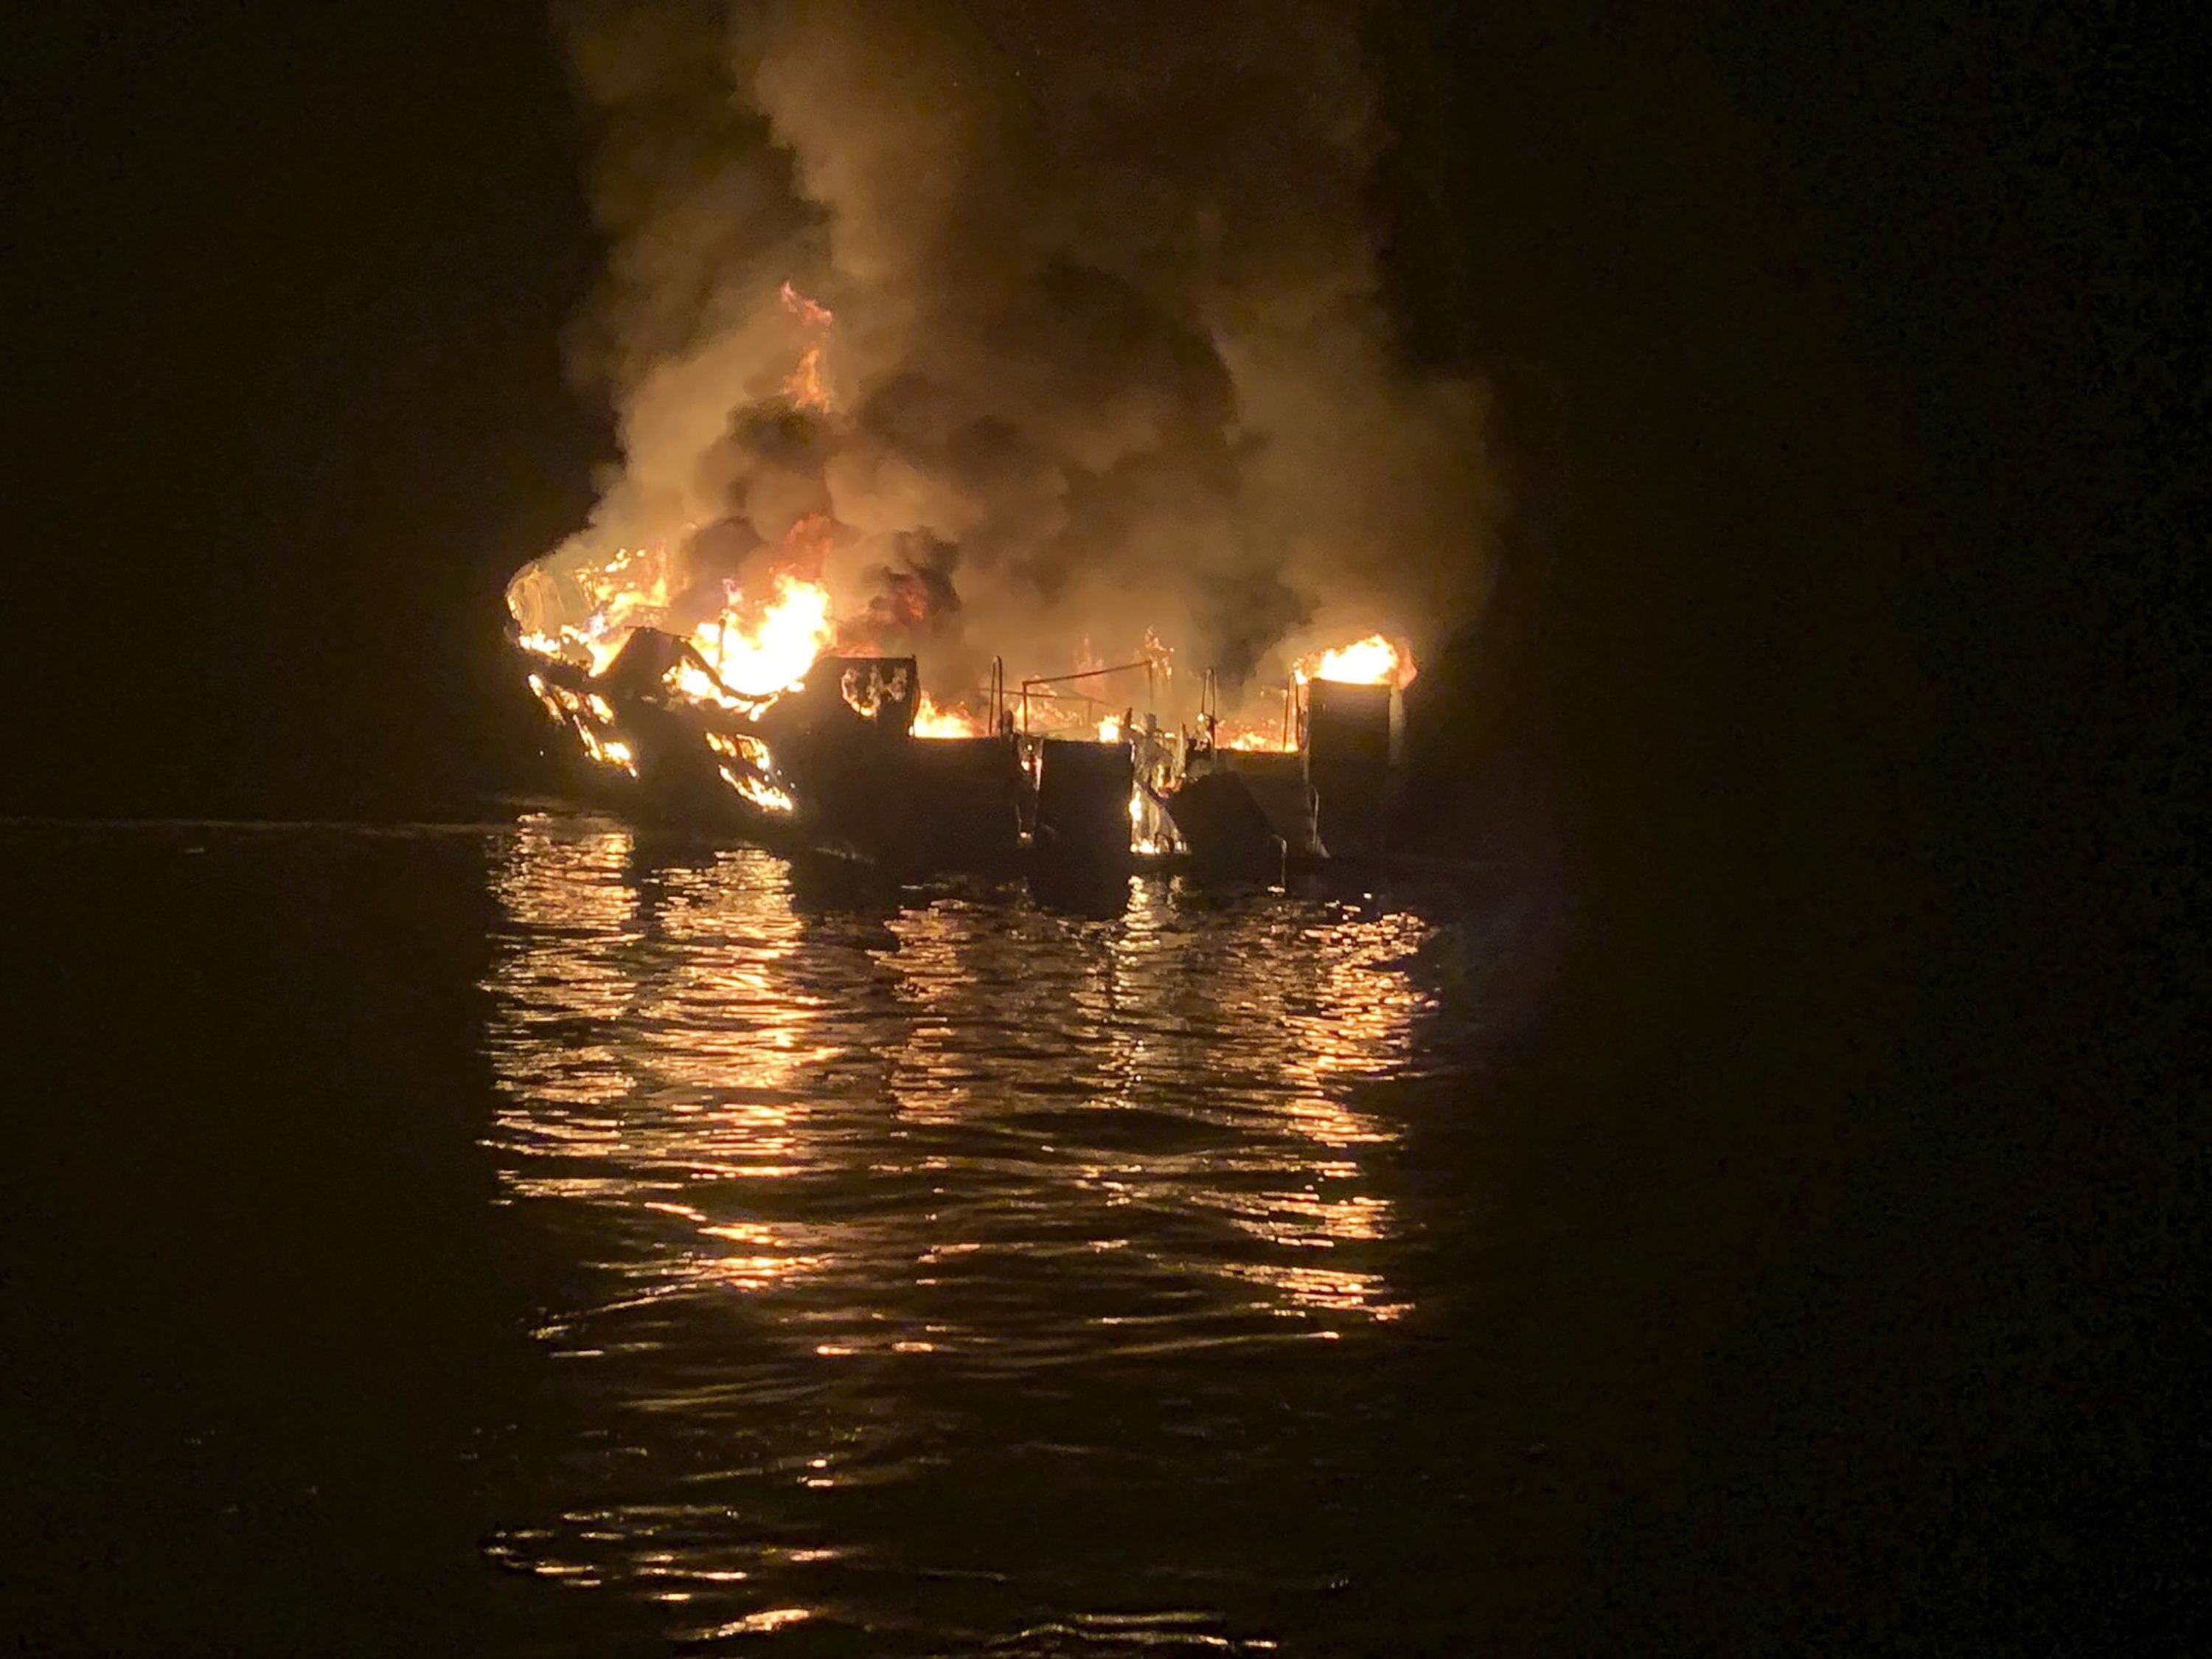 Search warrants served in California boat fire investigation